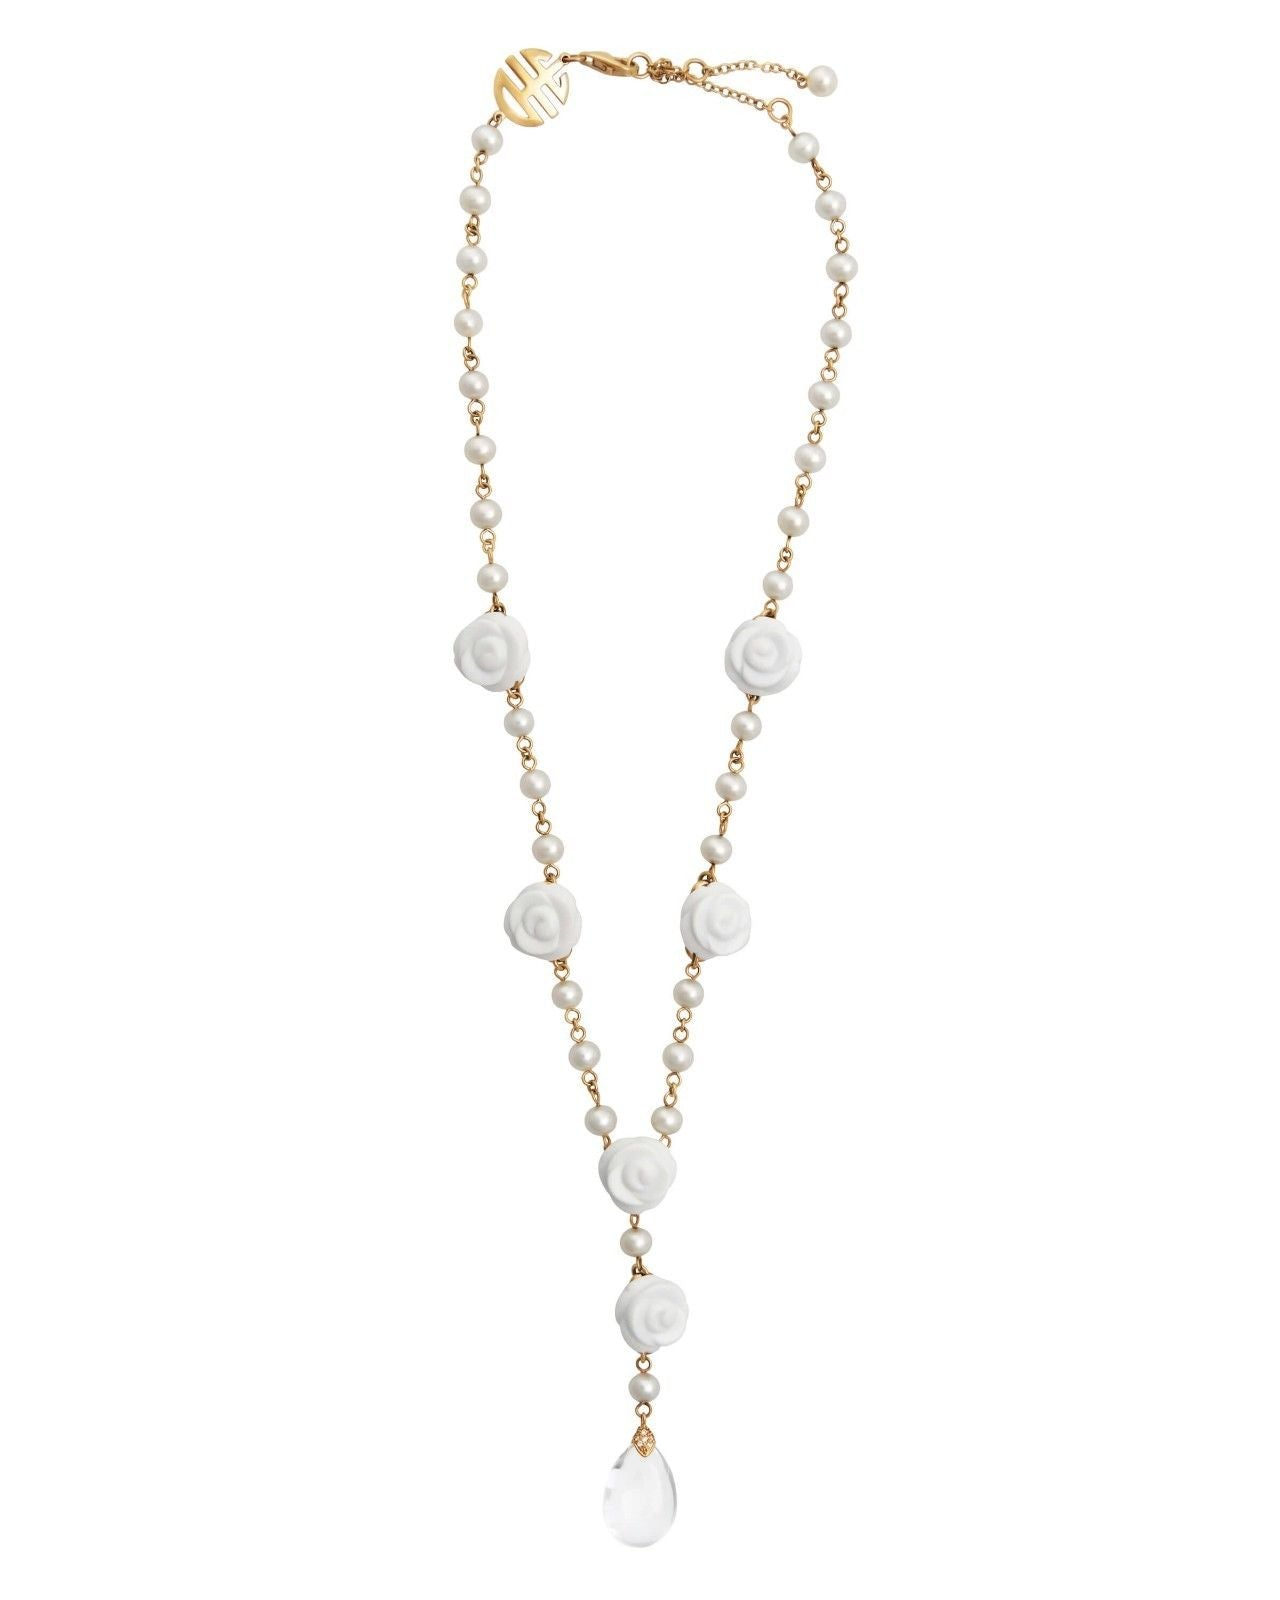 Mimi Milano Necklace In Rose 18K Gold Agate, White Pearls, Diamonds C347R1A1J